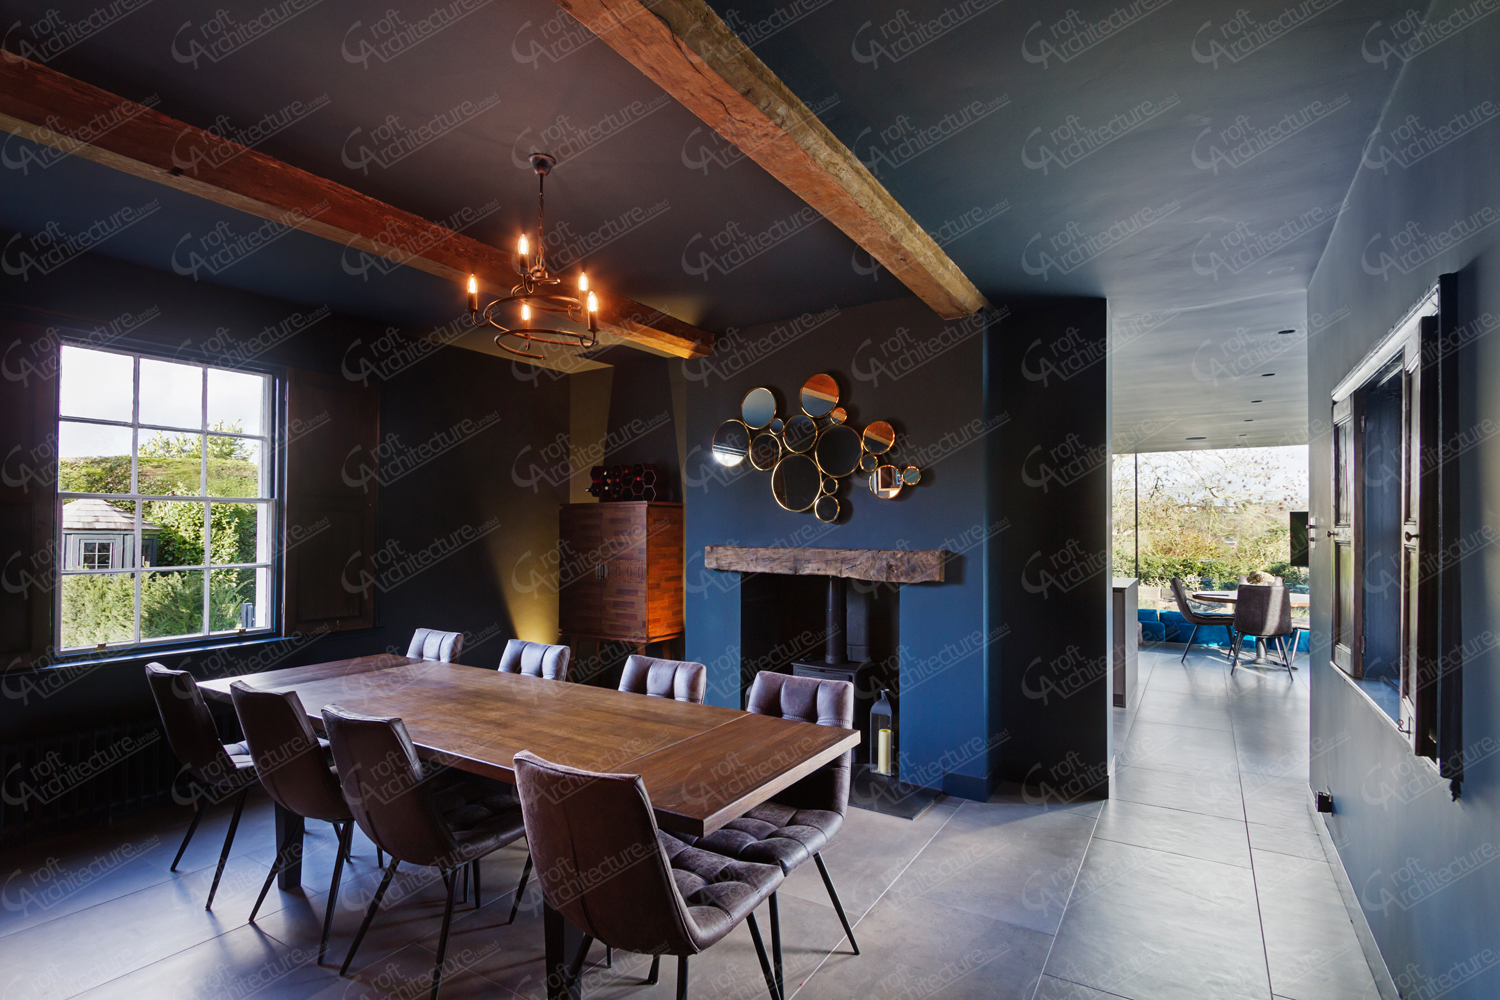 Croft Architecture Exposed Beams